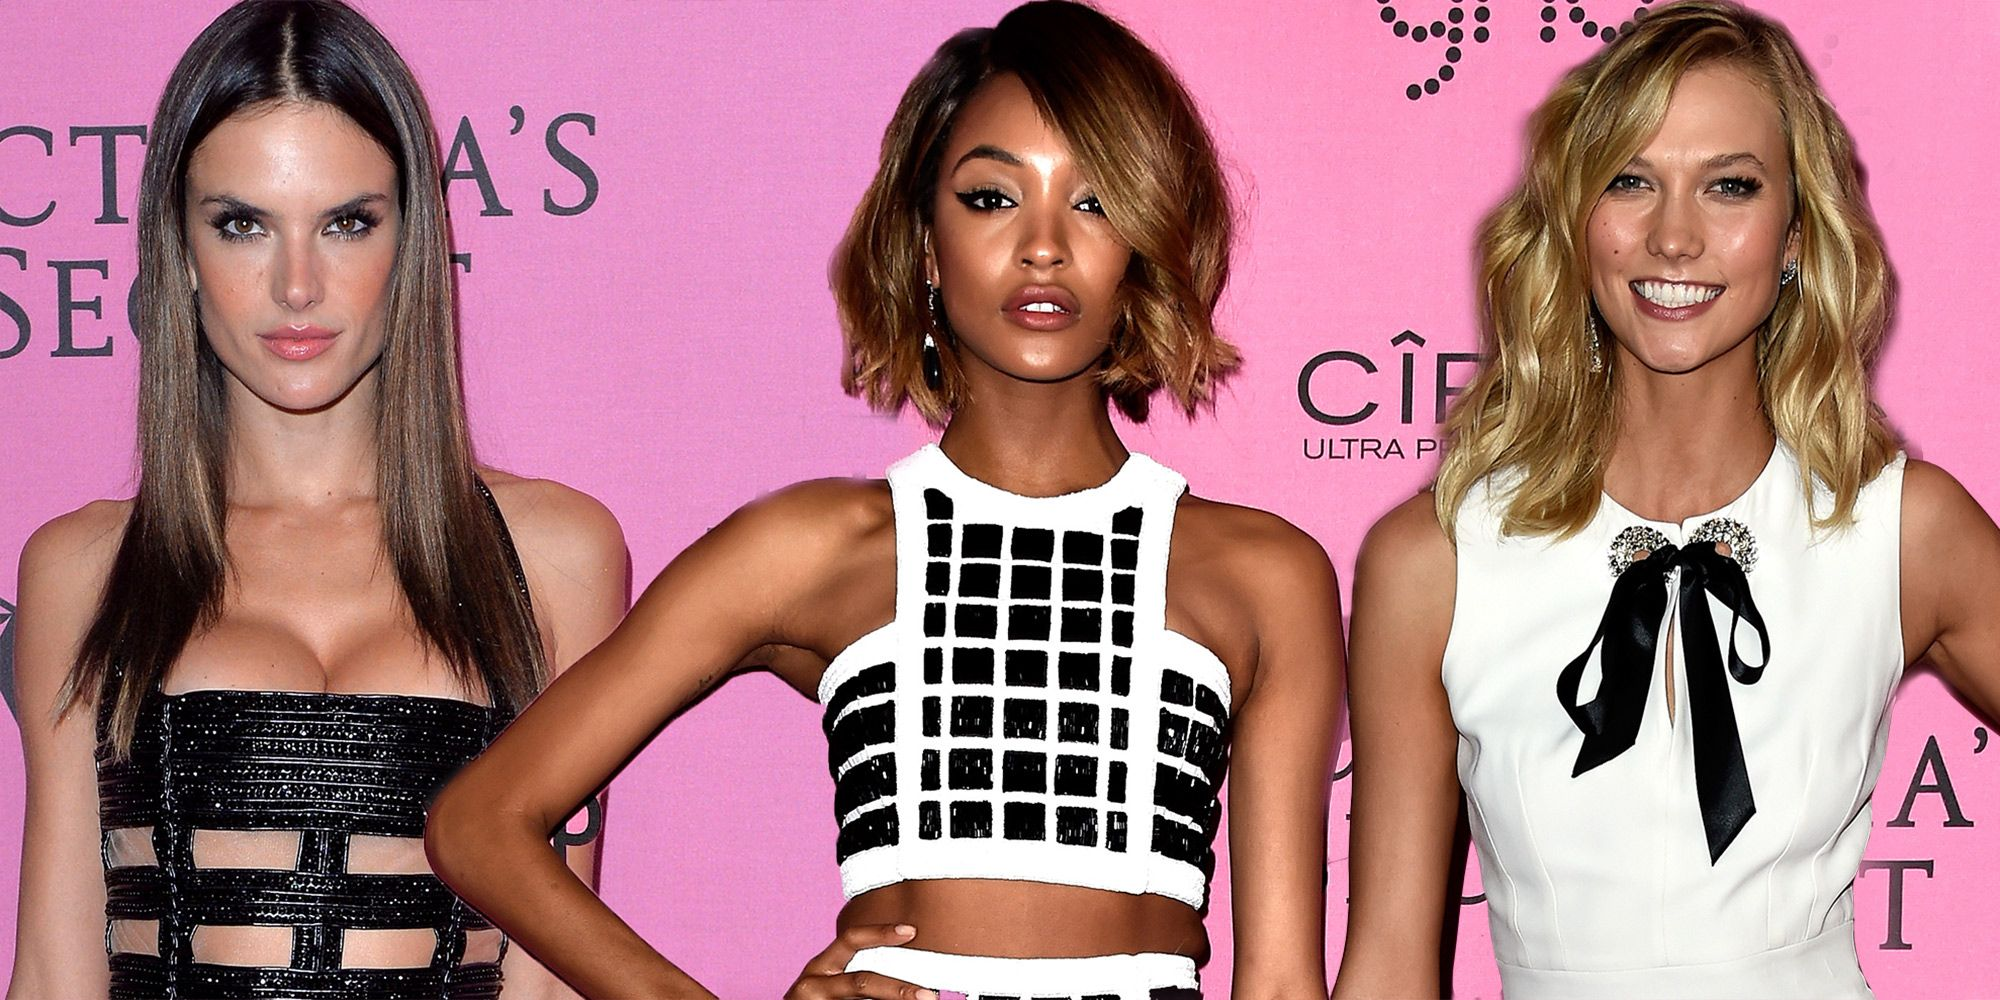 83384bde1c3d4 13 unexpected things Victoria's Secret models have said about their ...